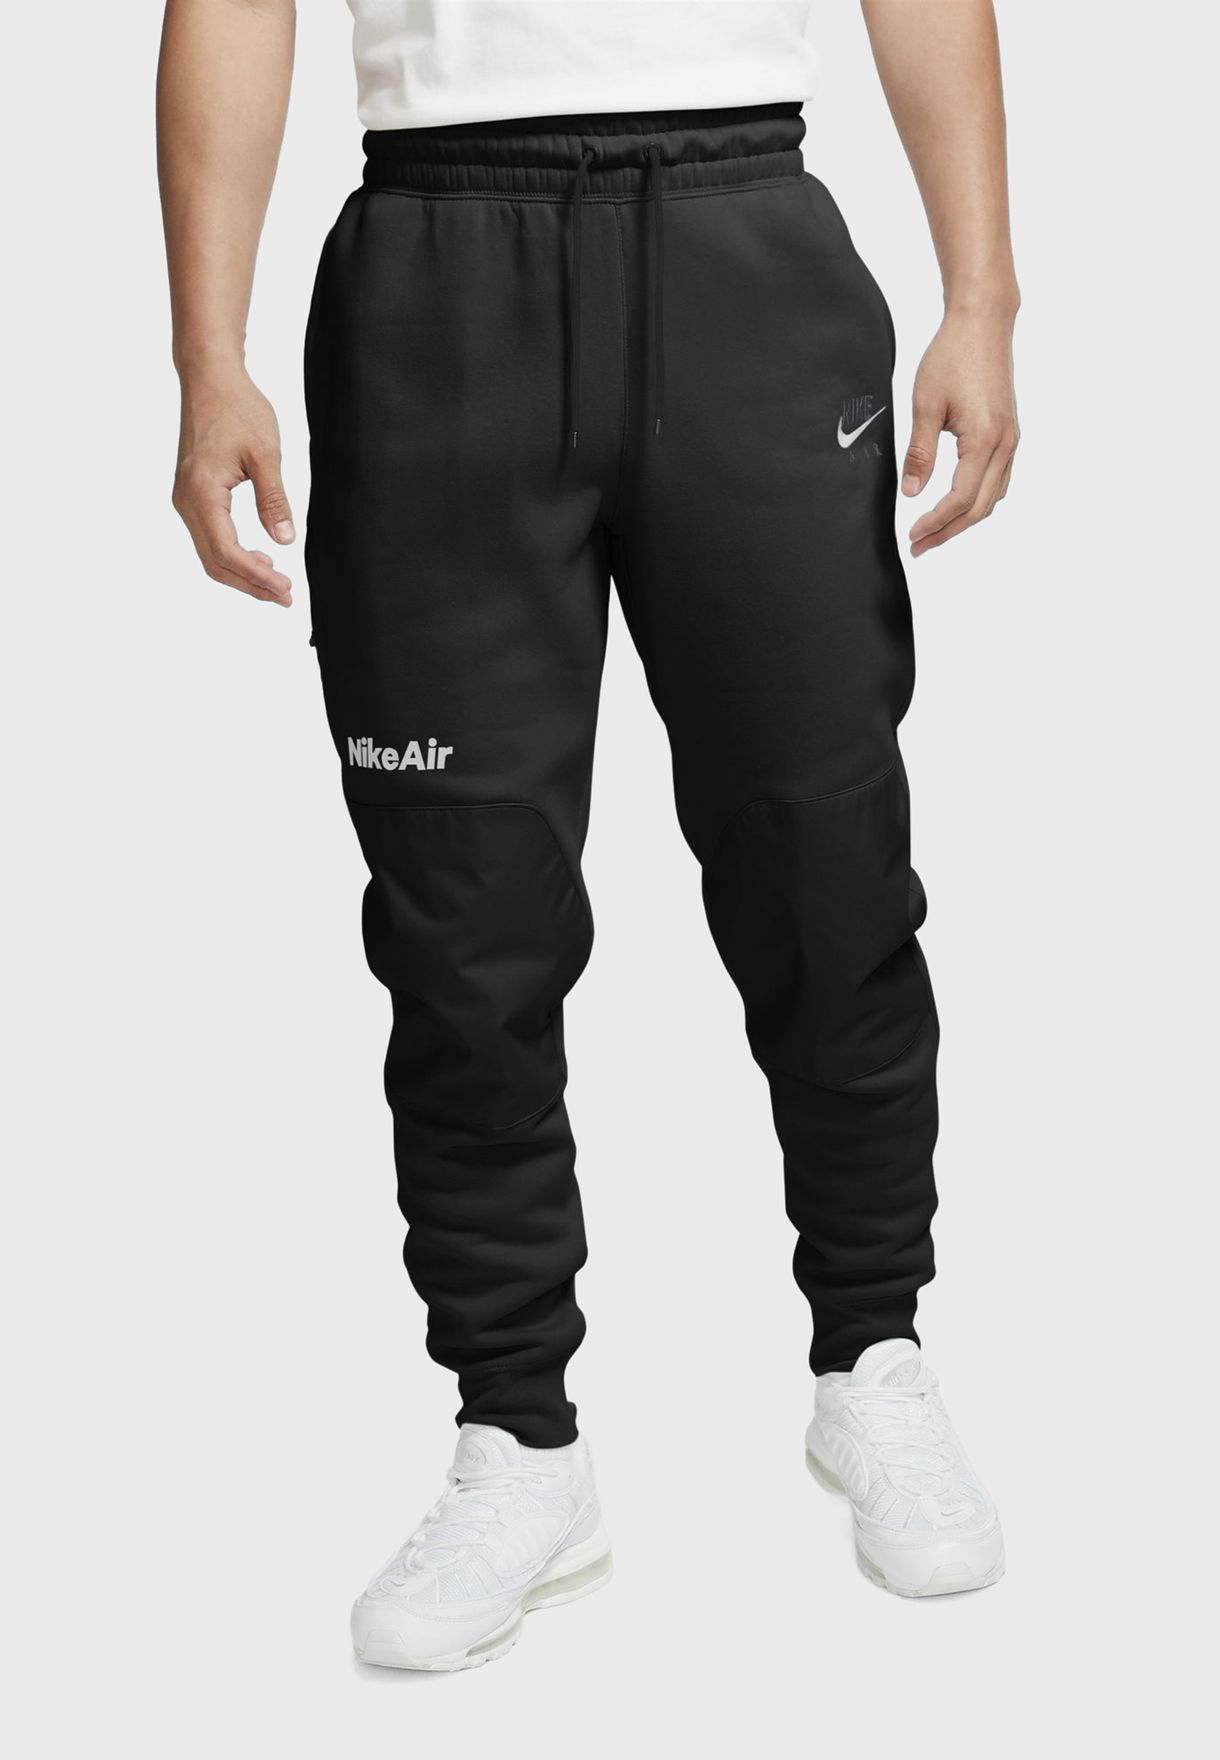 NSW Air Fleece Sweatpants